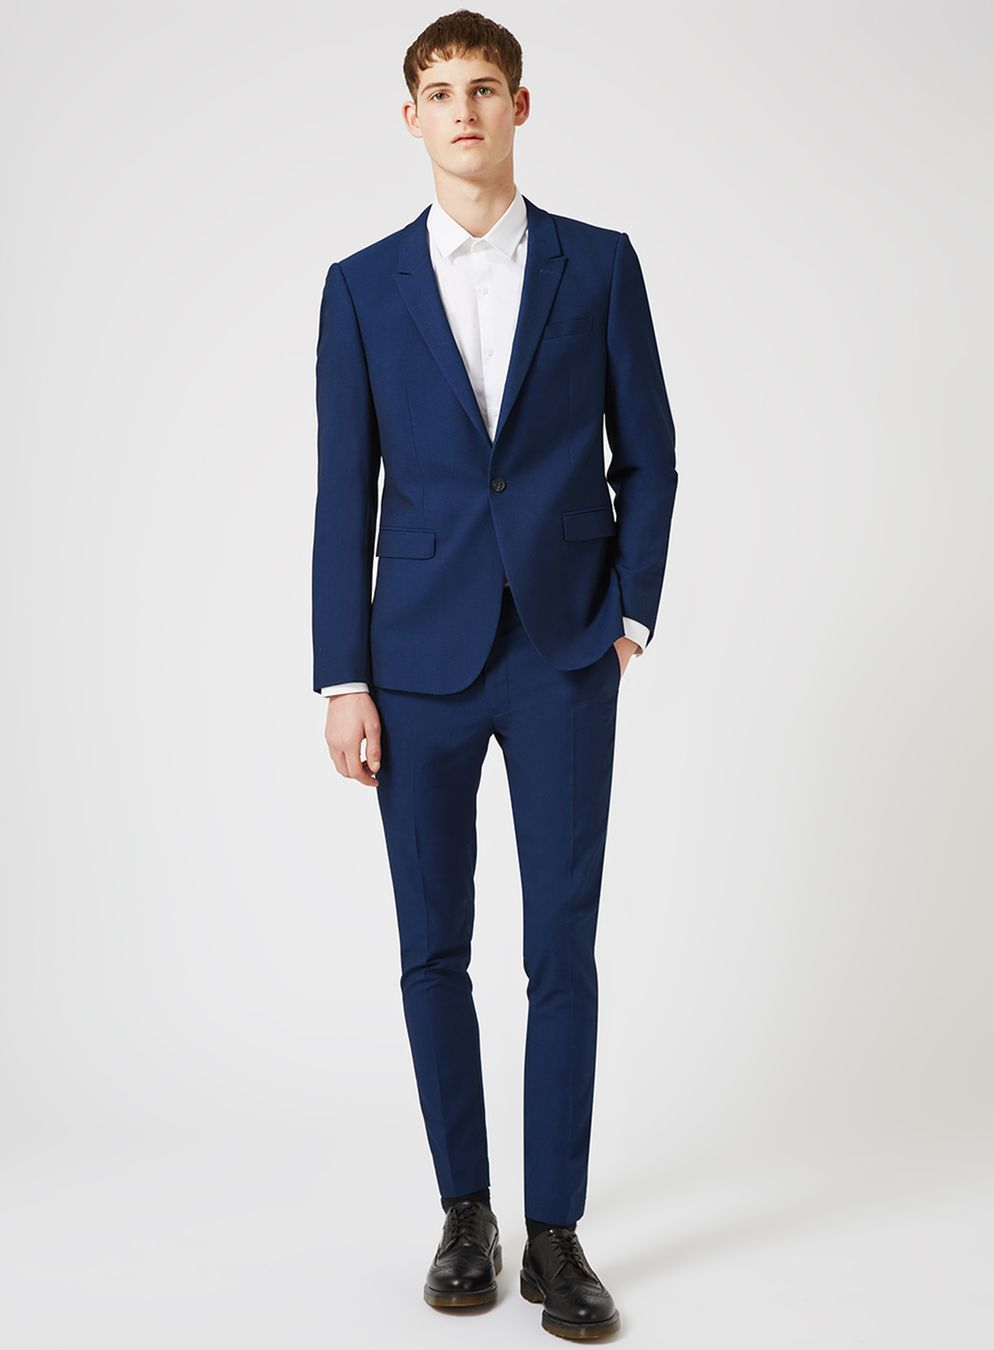 topman suits blue twill ultra skinny fit suit jacket - topman usa jwkxury